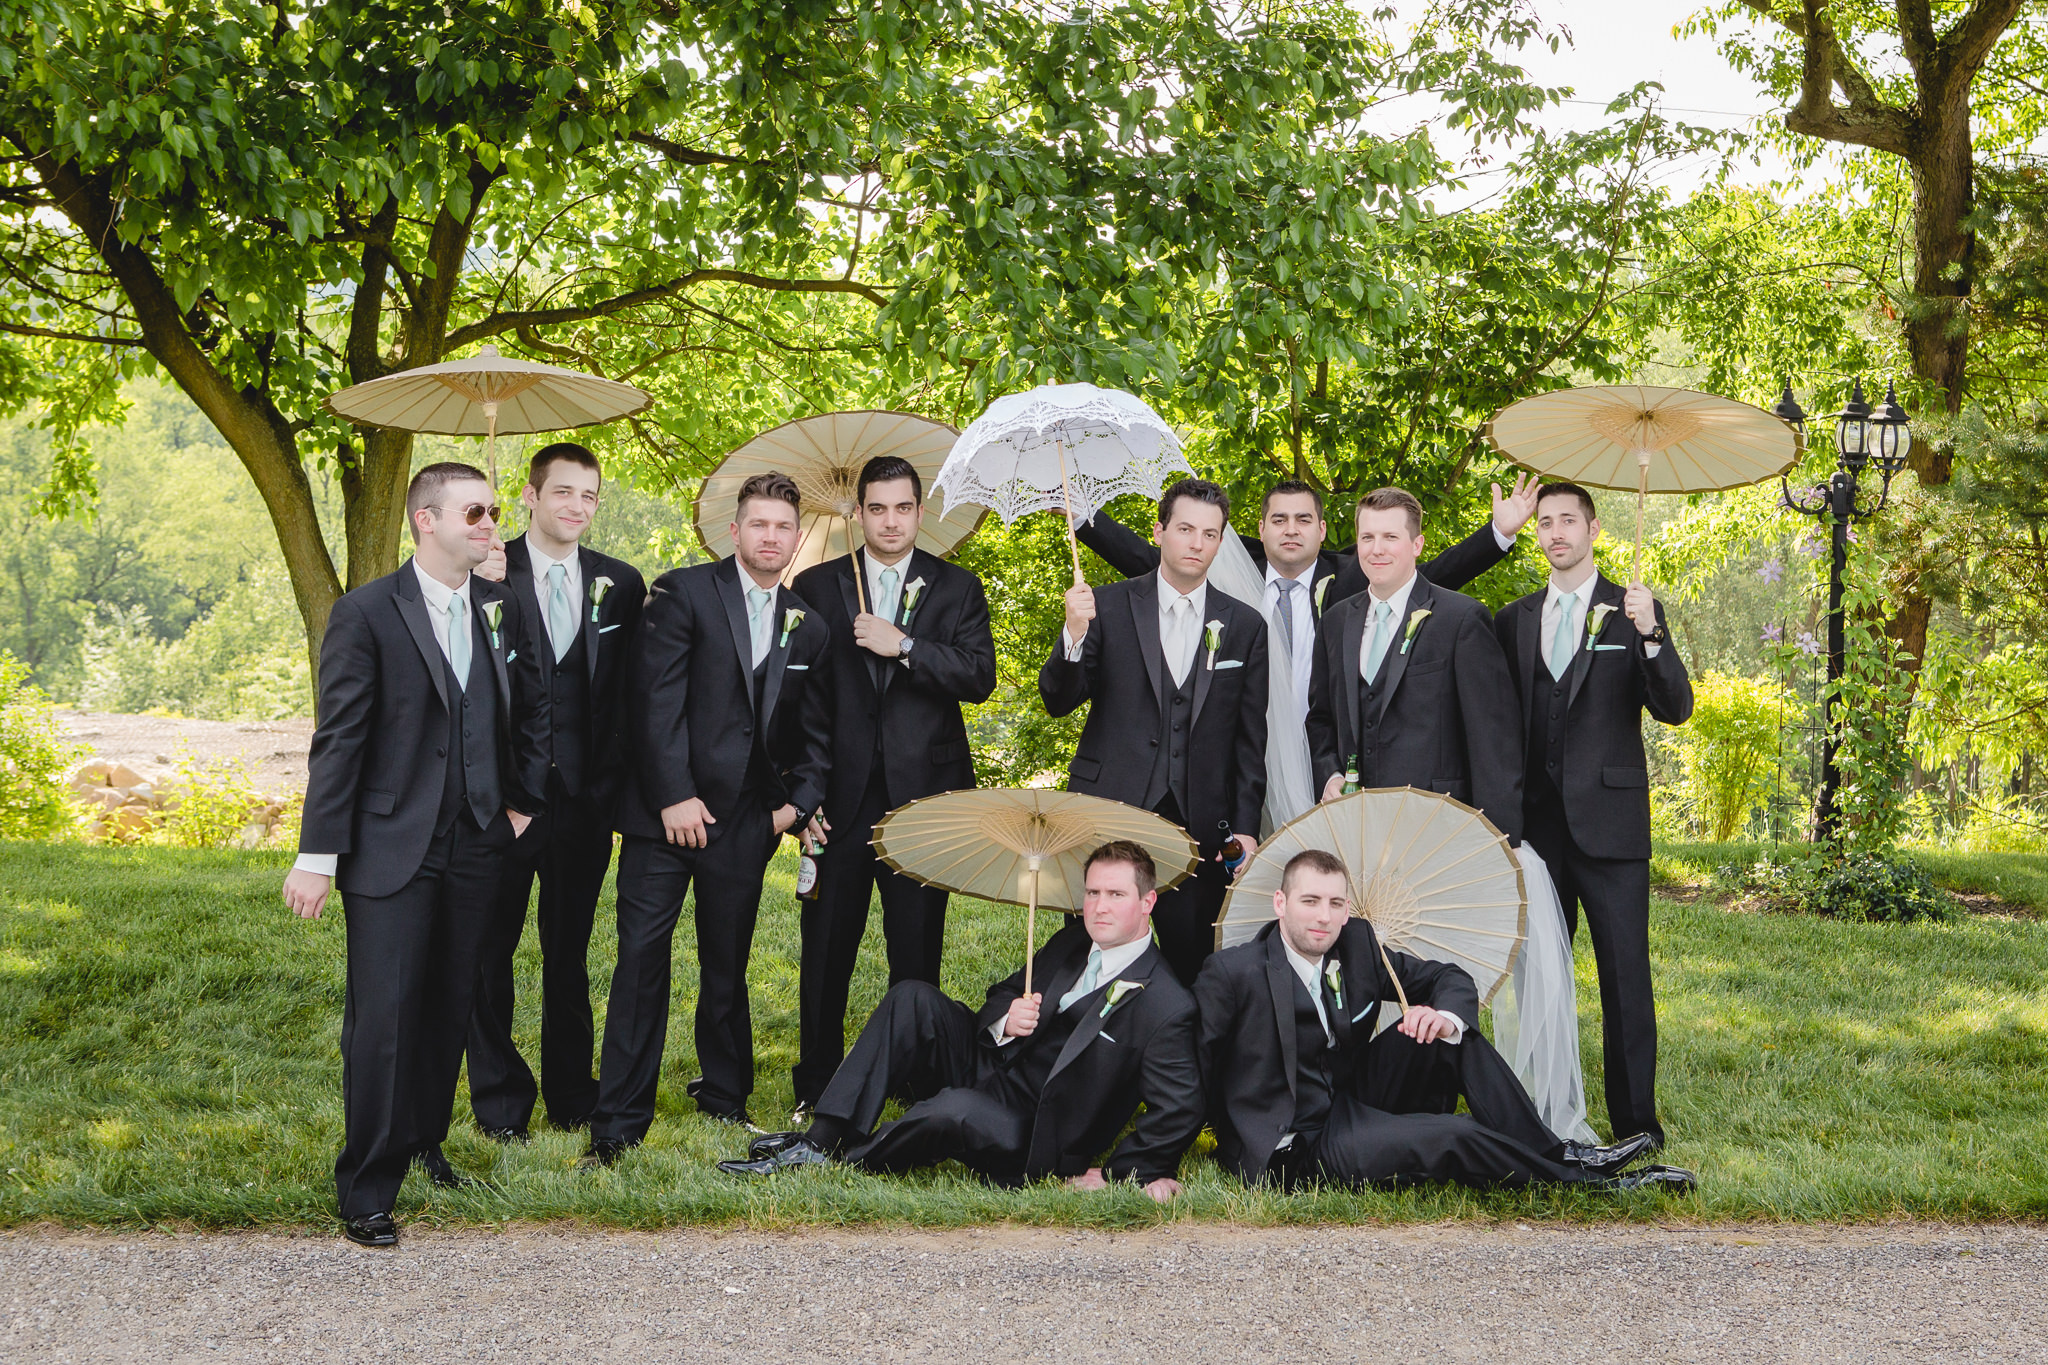 Groomsmen pose with bride's veil and umbrellas at Greystone Fields